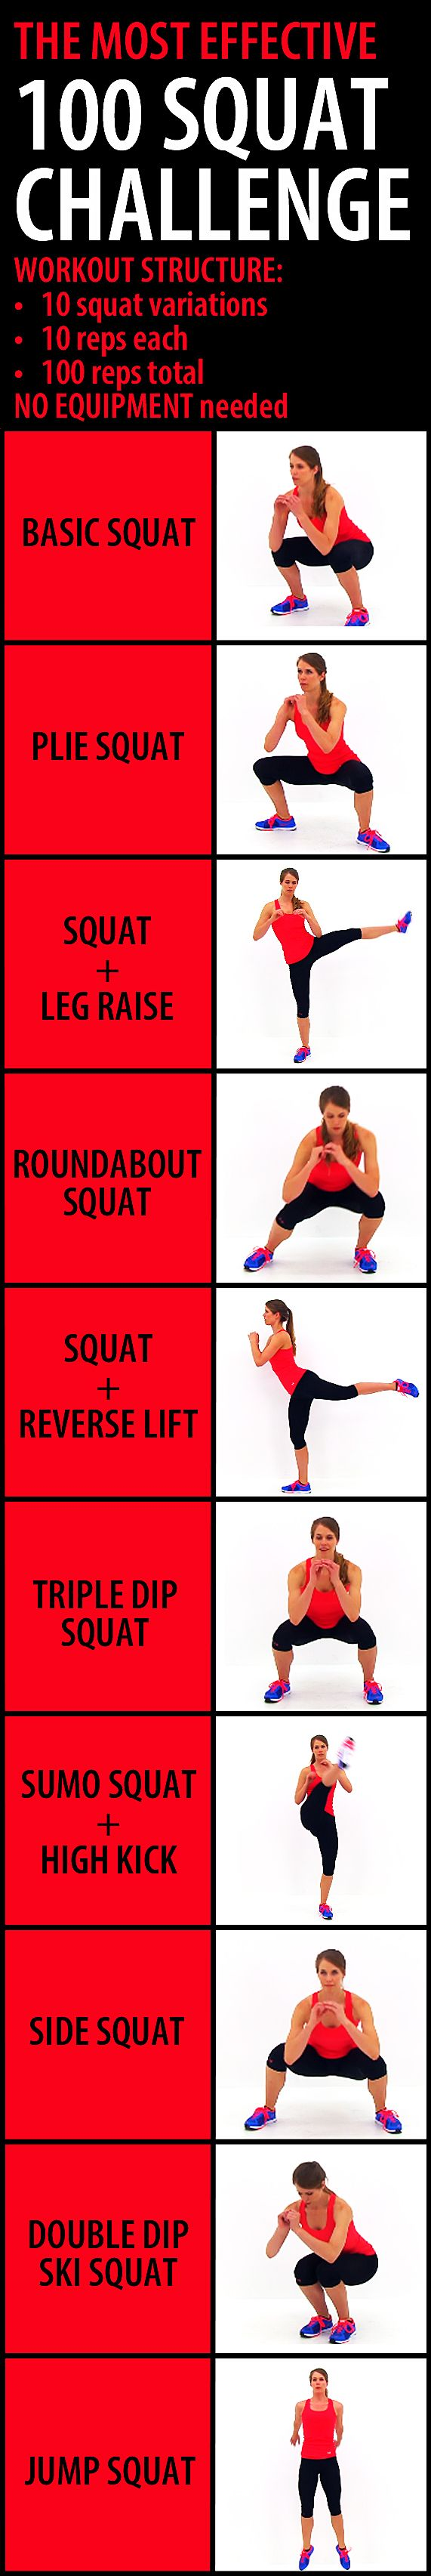 The most effective 100 SQUAT CHALLENGE. This challenge combines 10 different squat variations in order to target all of those glute muscles, from multiple angles, making it more effective than hundreds of repetitions of the same exact motion. For the best results do this routine up to 4-5 times a week. You will start to see small changes in your body in as little as a week or two, but more noticeable changes will occur in 3-4 weeks. #gluteworkout #workoutforwomen #buttworkout #butt #booty